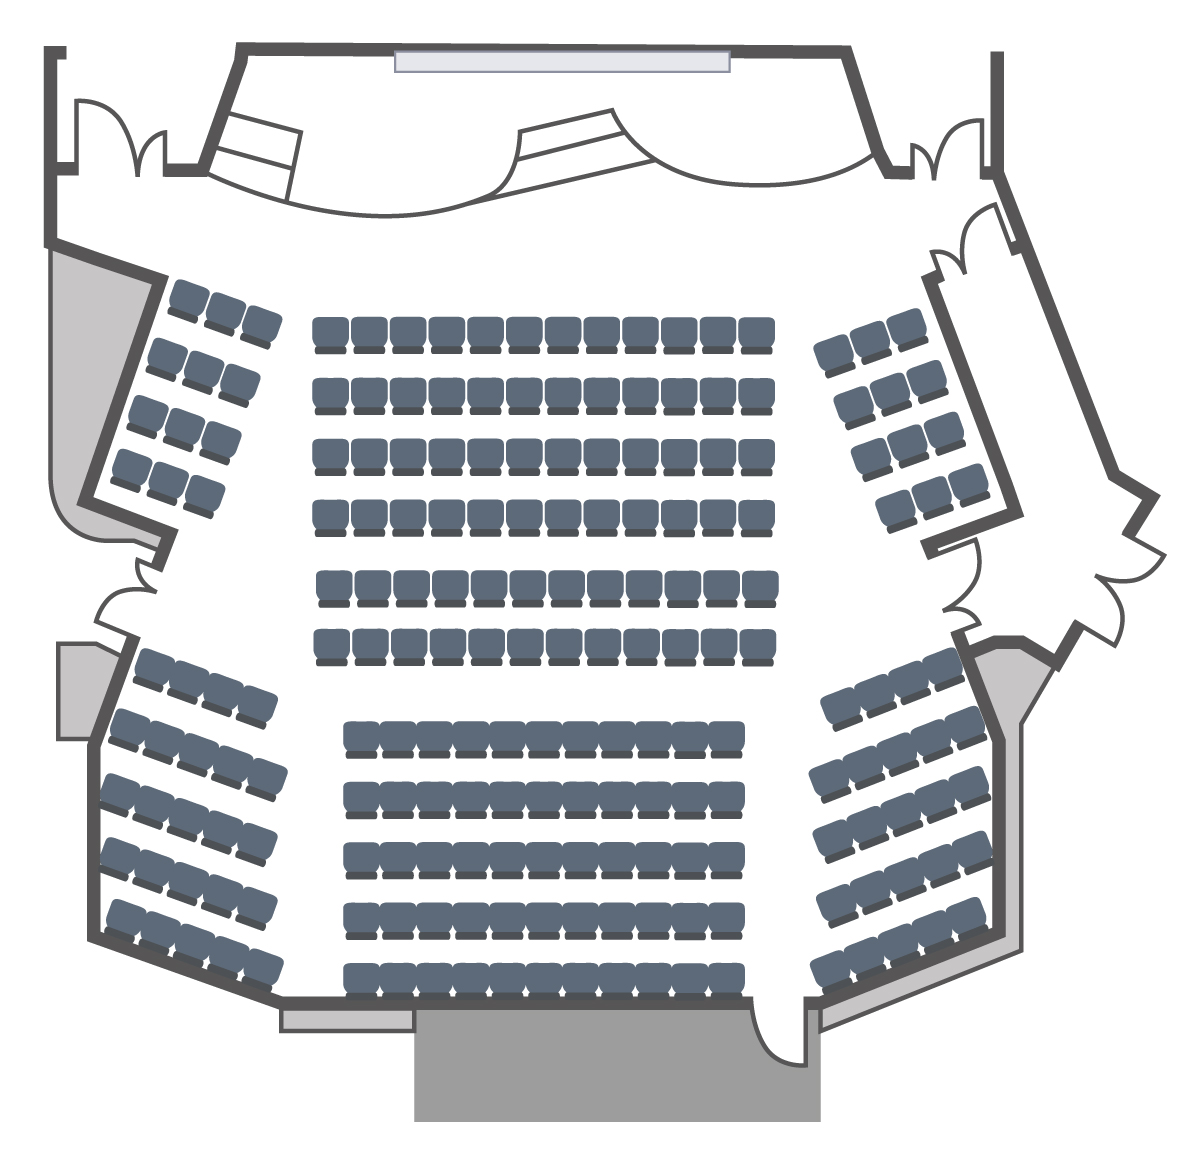 Squire theatre layout for presentation